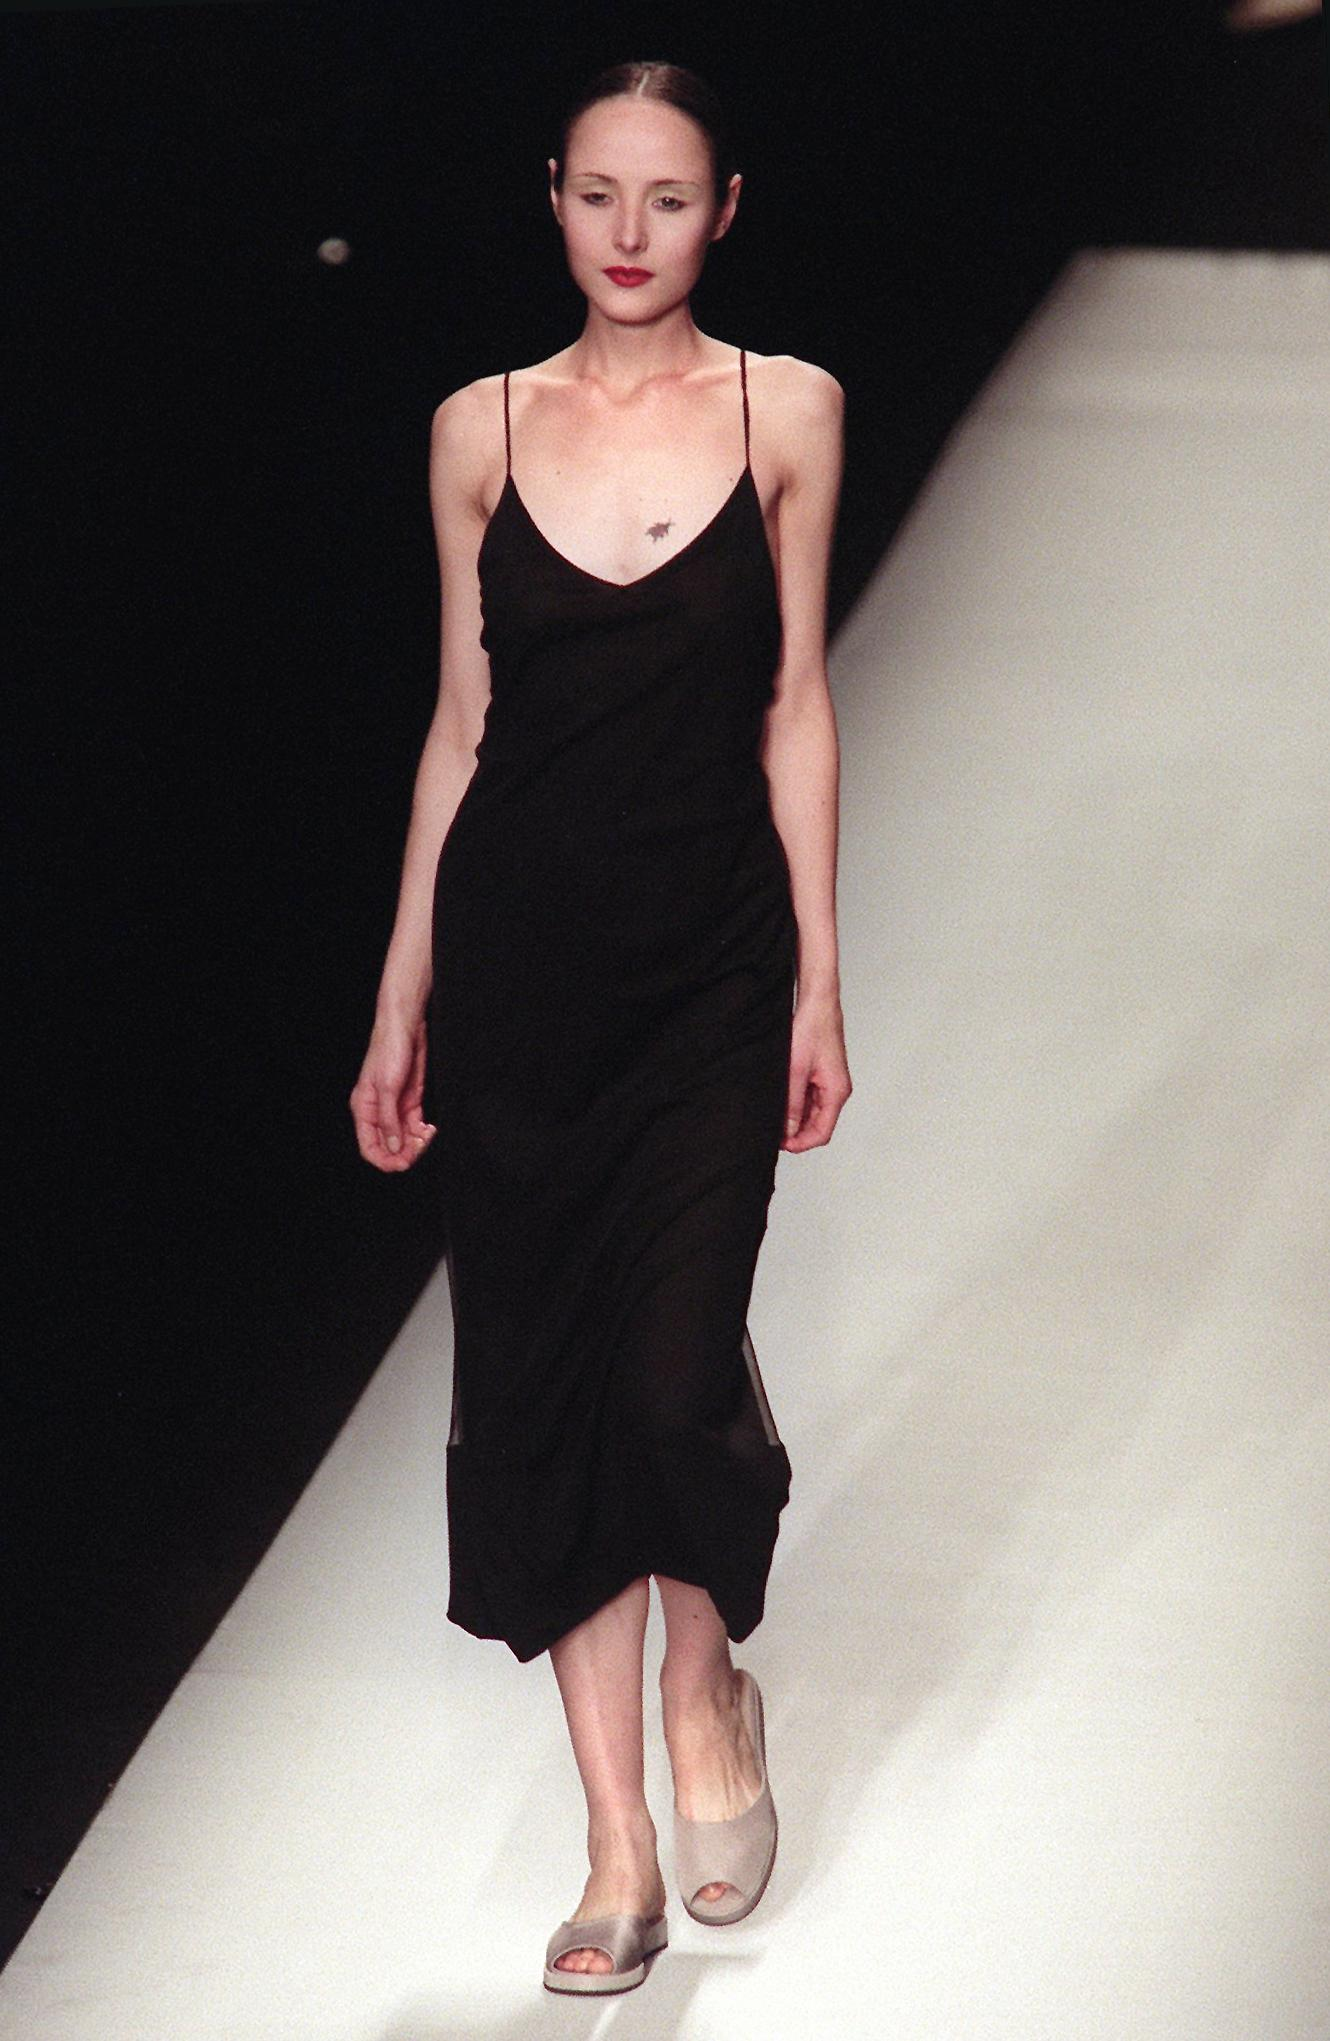 A model wears a black slip dress during the John Bartlett fashion show